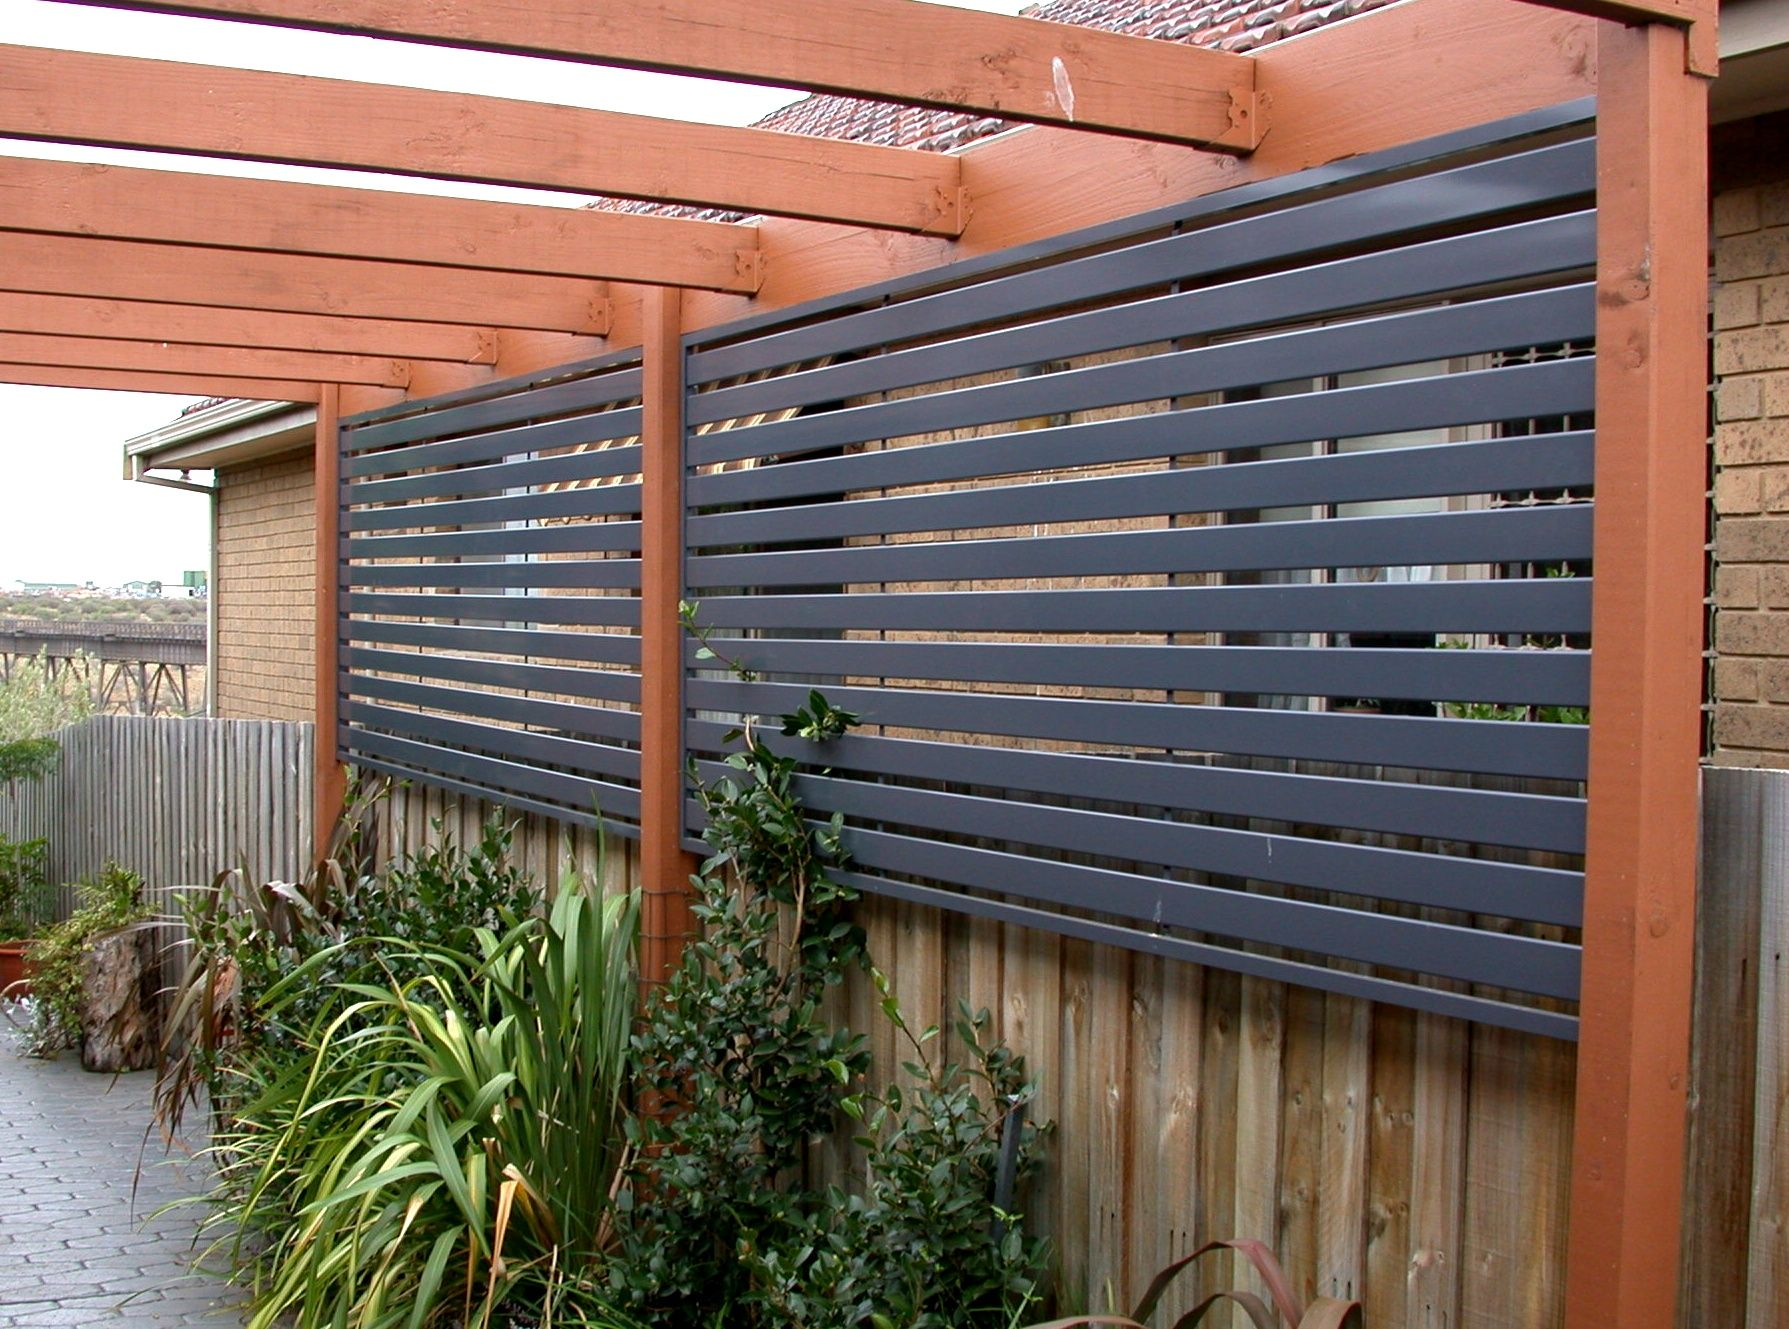 Pool Privacy Screen ace longlife balustrading & lacework - privacy screens | garden